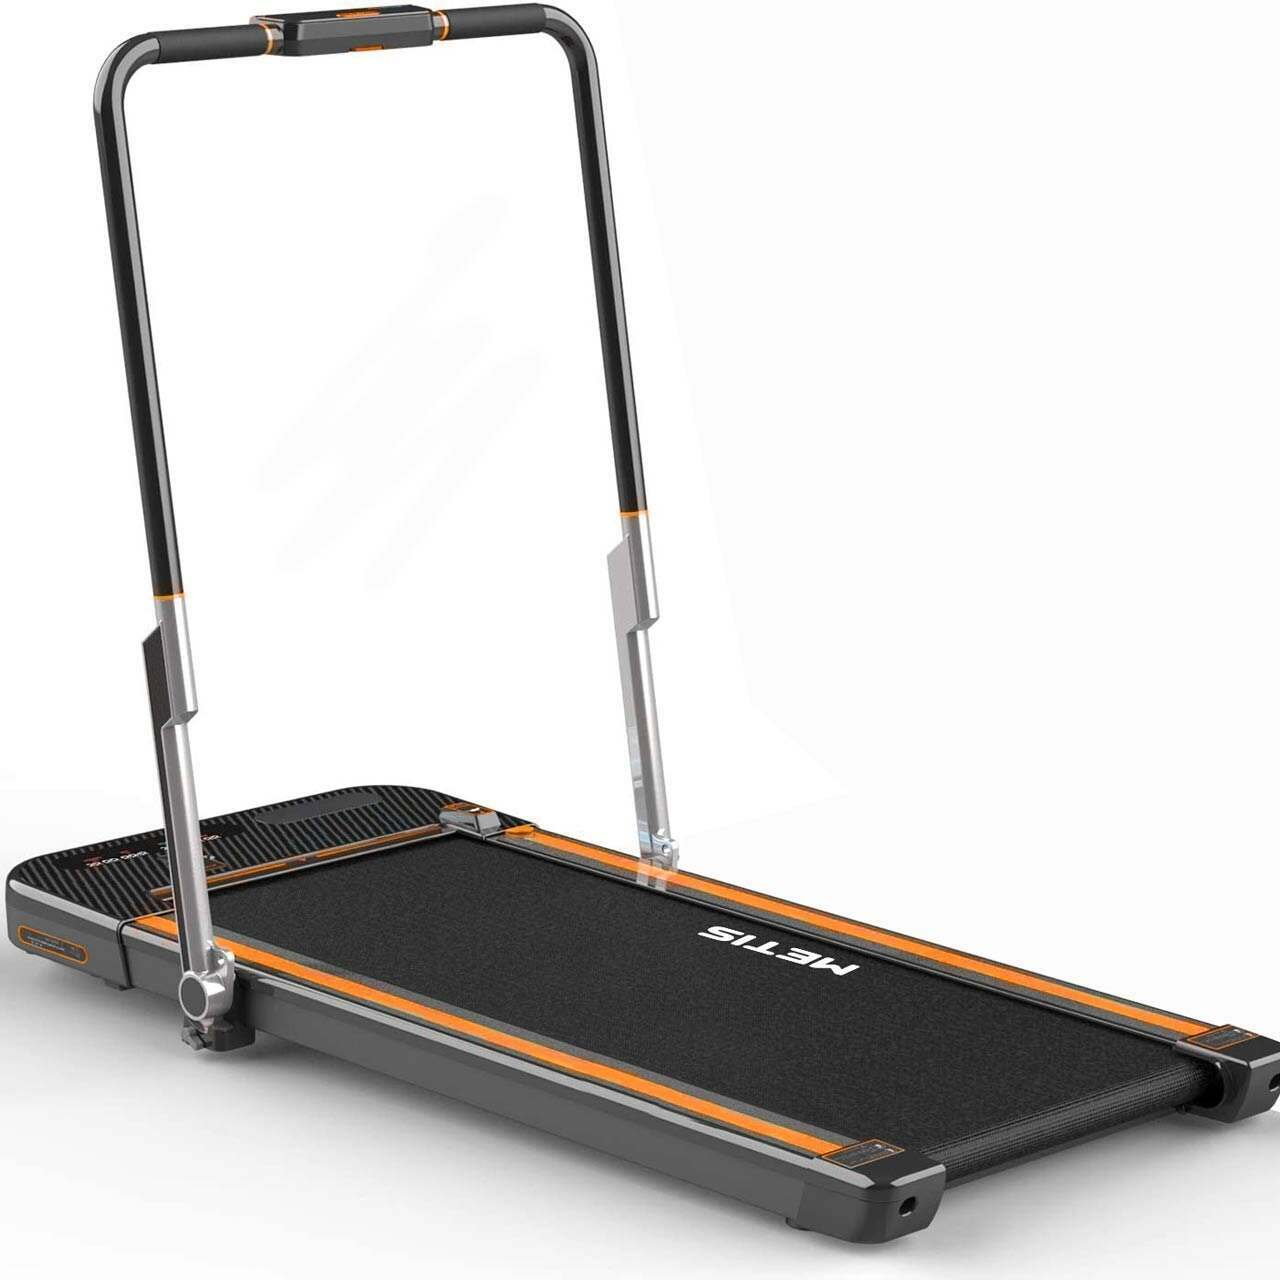 METIS Walking Folding Treadmill (440W/1-8kph)